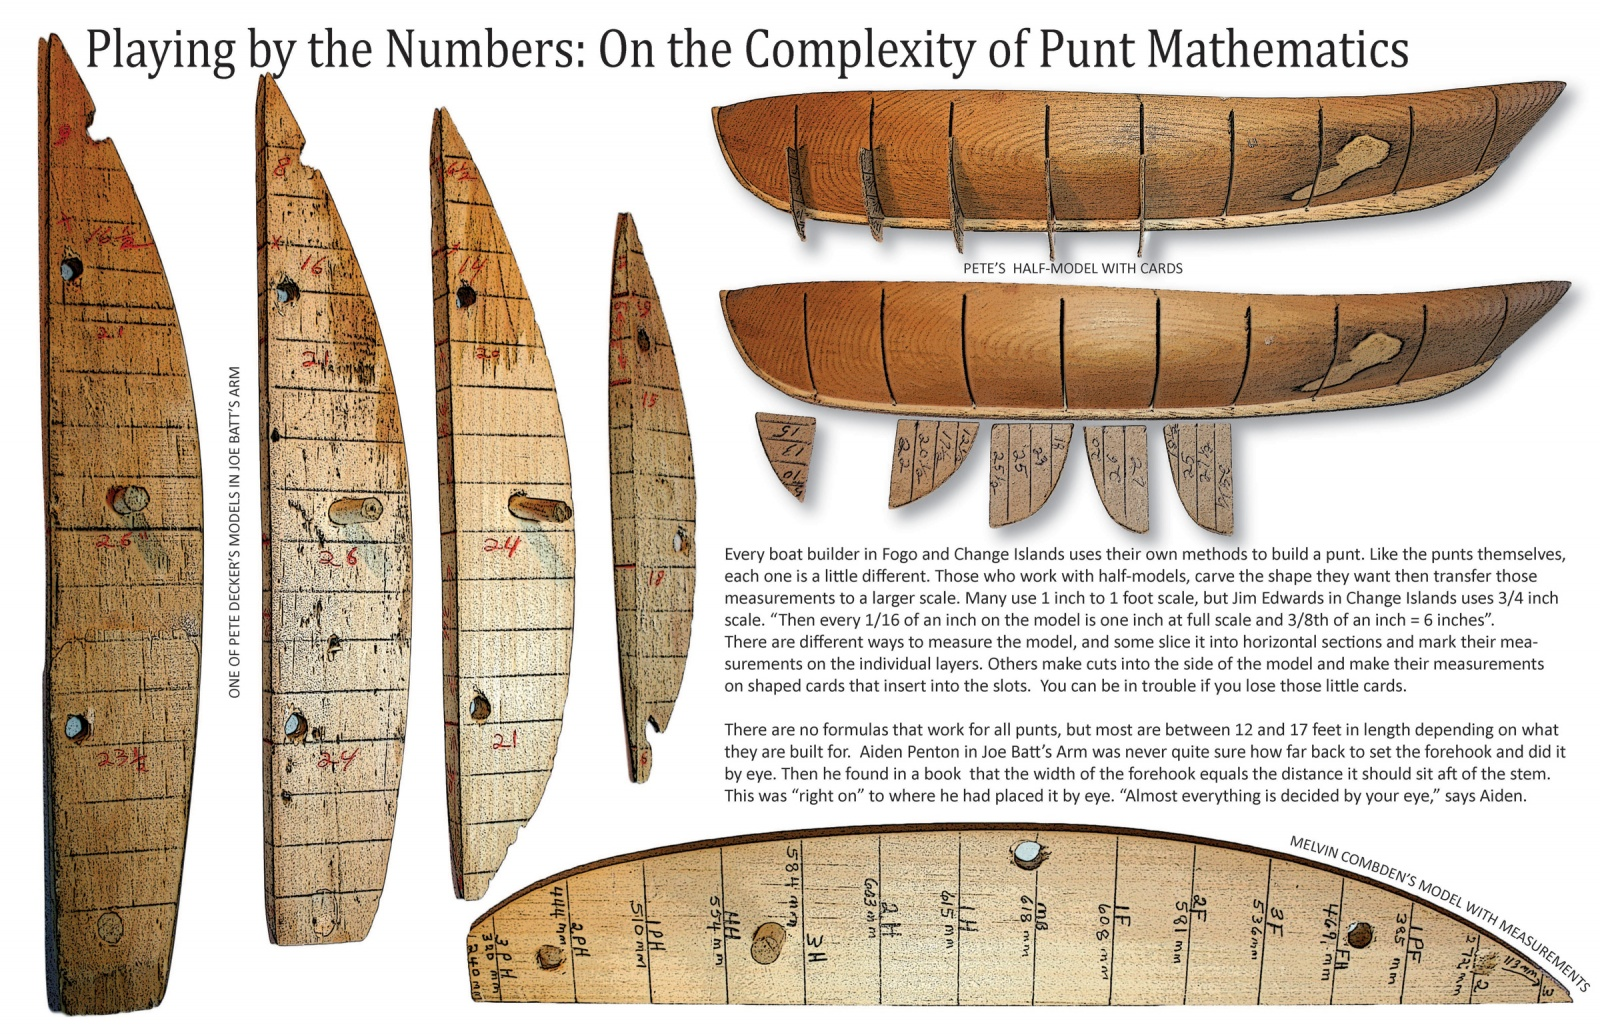 Playing by the Numbers: On the Complexity of Punt Mathematics